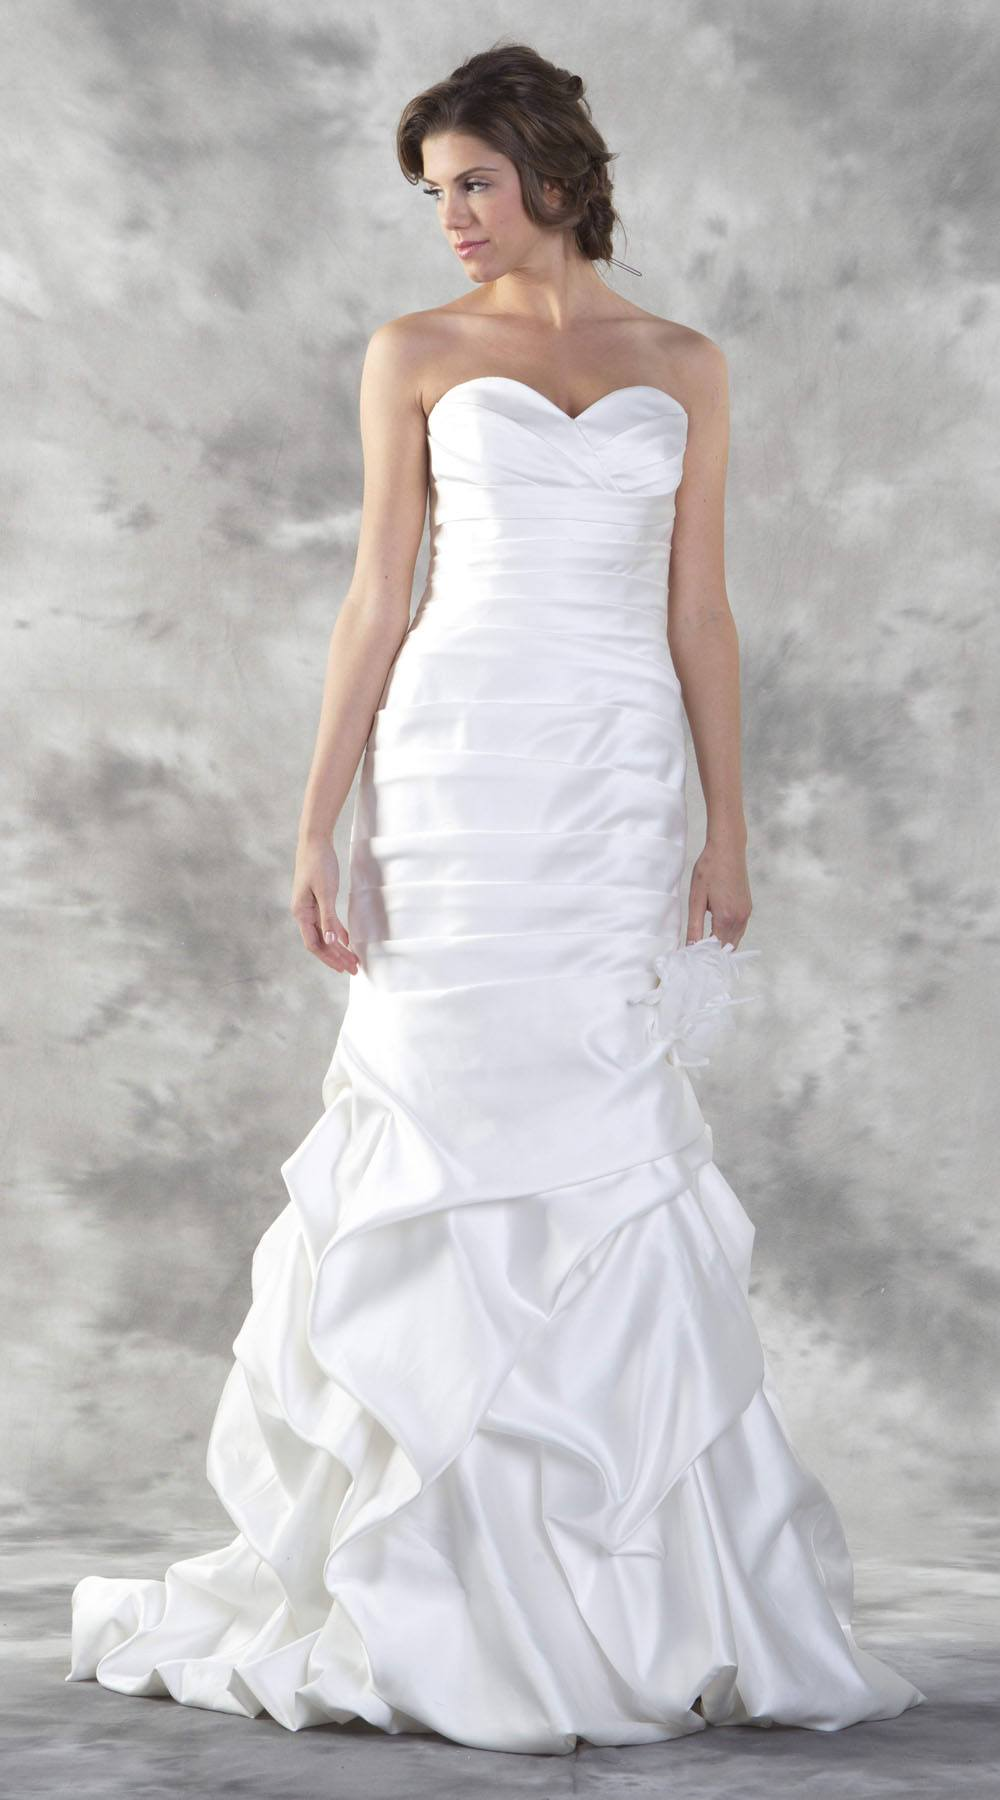 Poly Usa Ed1302 Ivory Mermaid Style Strapless Wedding Gown Lace Up